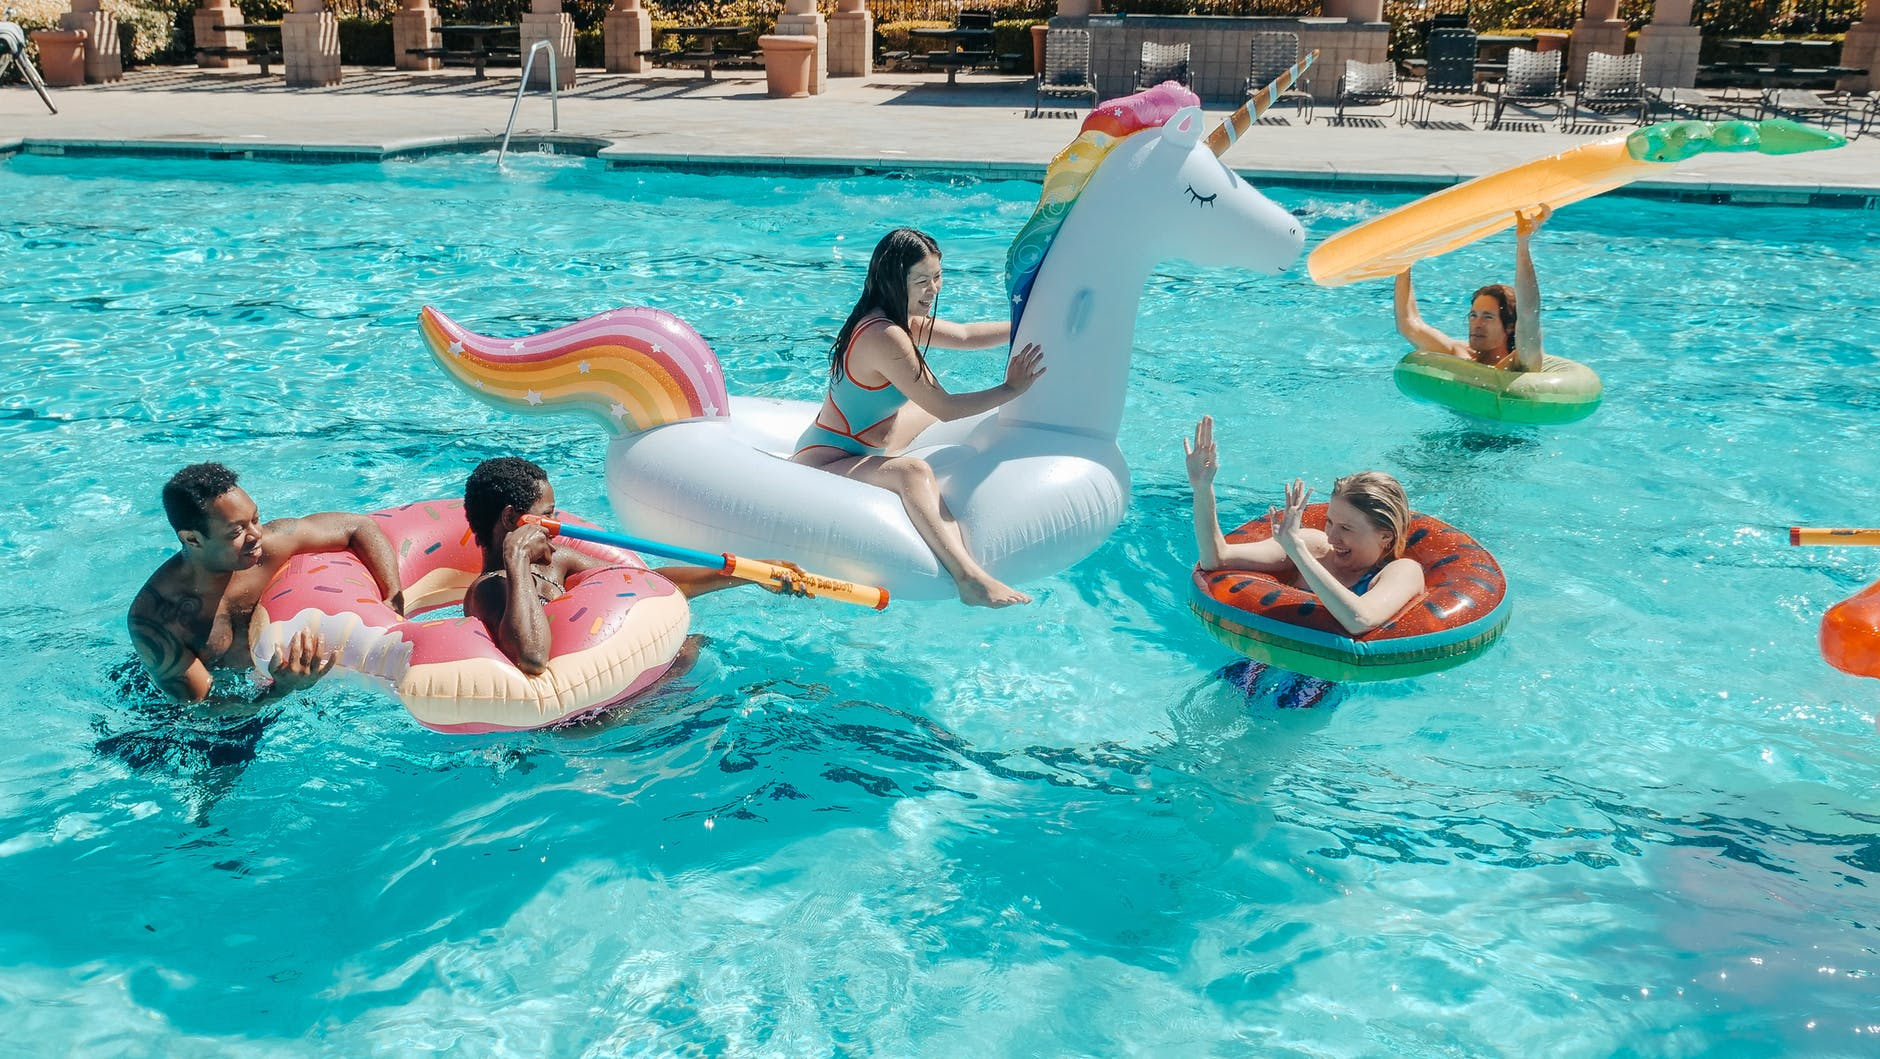 pool accessories, pool supplies, yescomusa